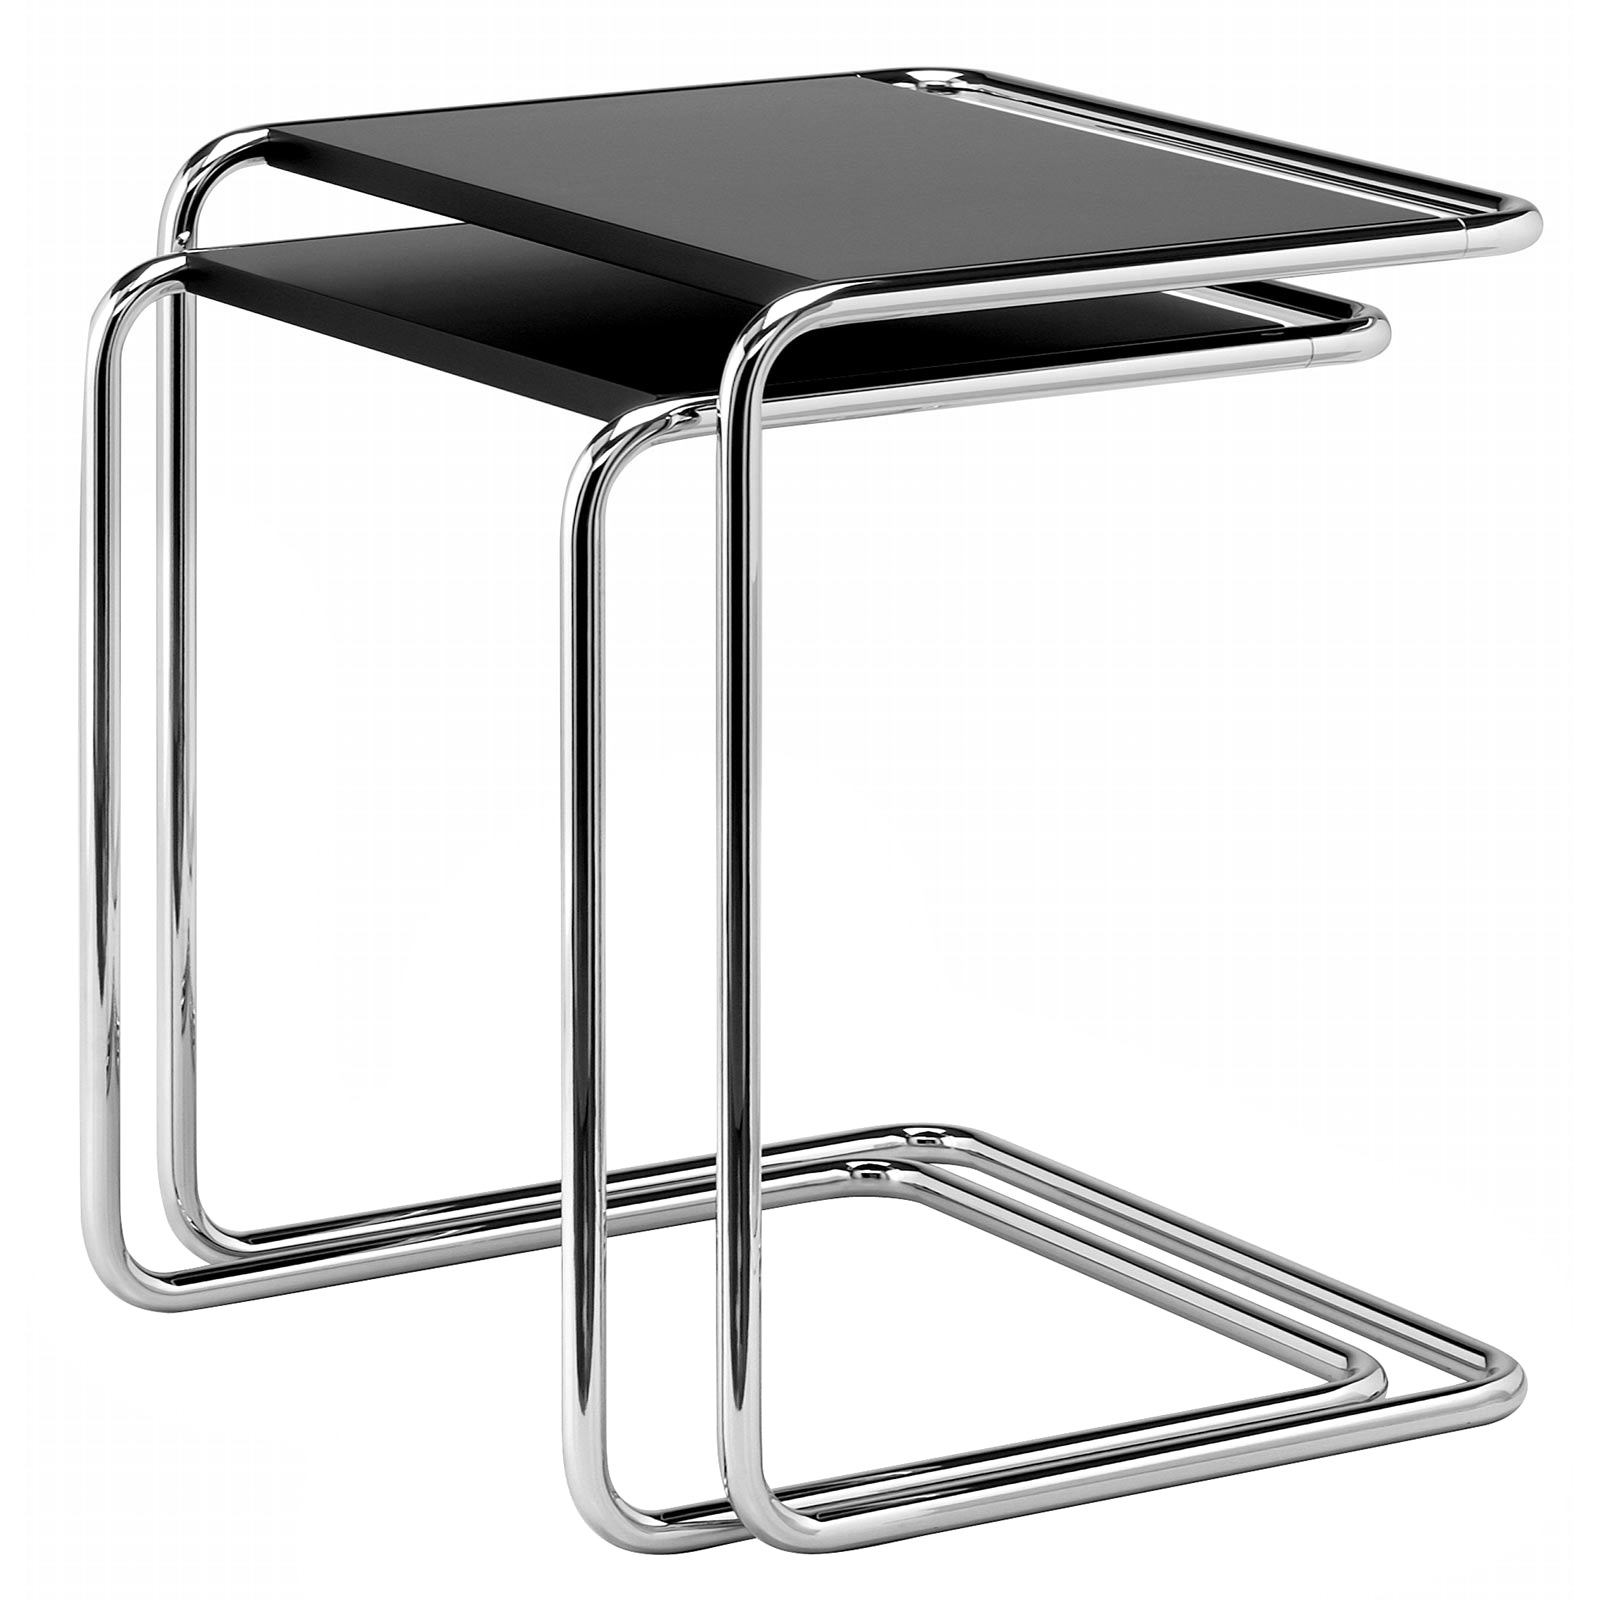 Stuhl Thonet B 97 Side Table / Nesting Table By Thonet